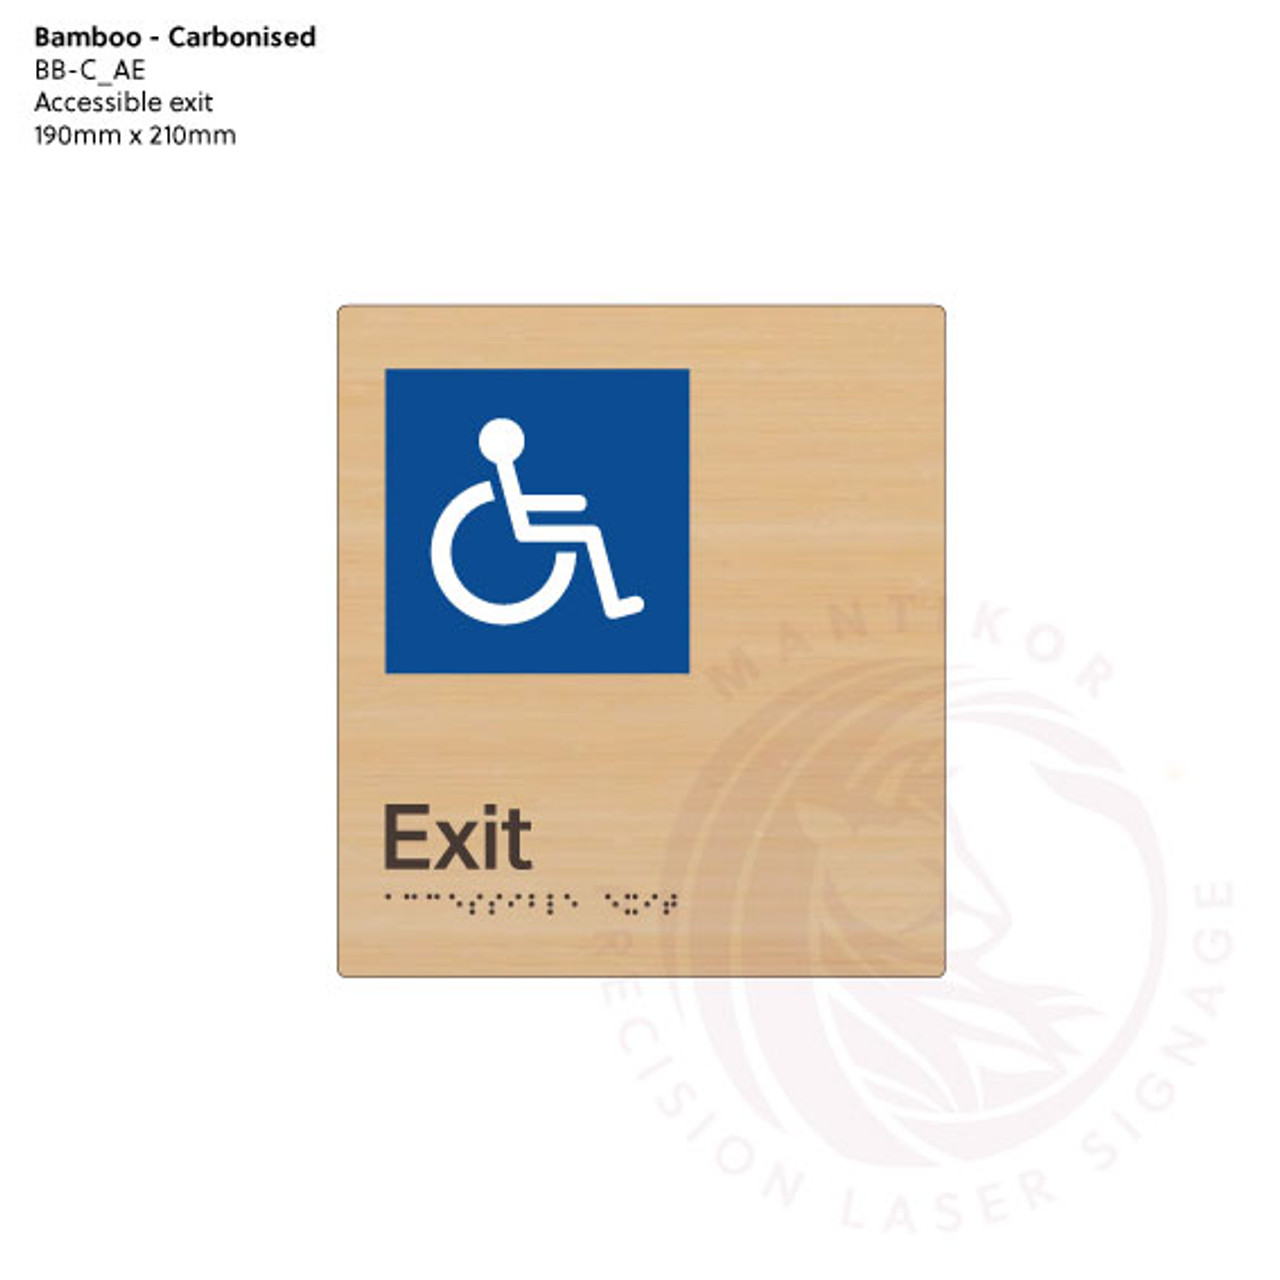 Carbonised Bamboo Tactile Braille Signs - Accessible Exit